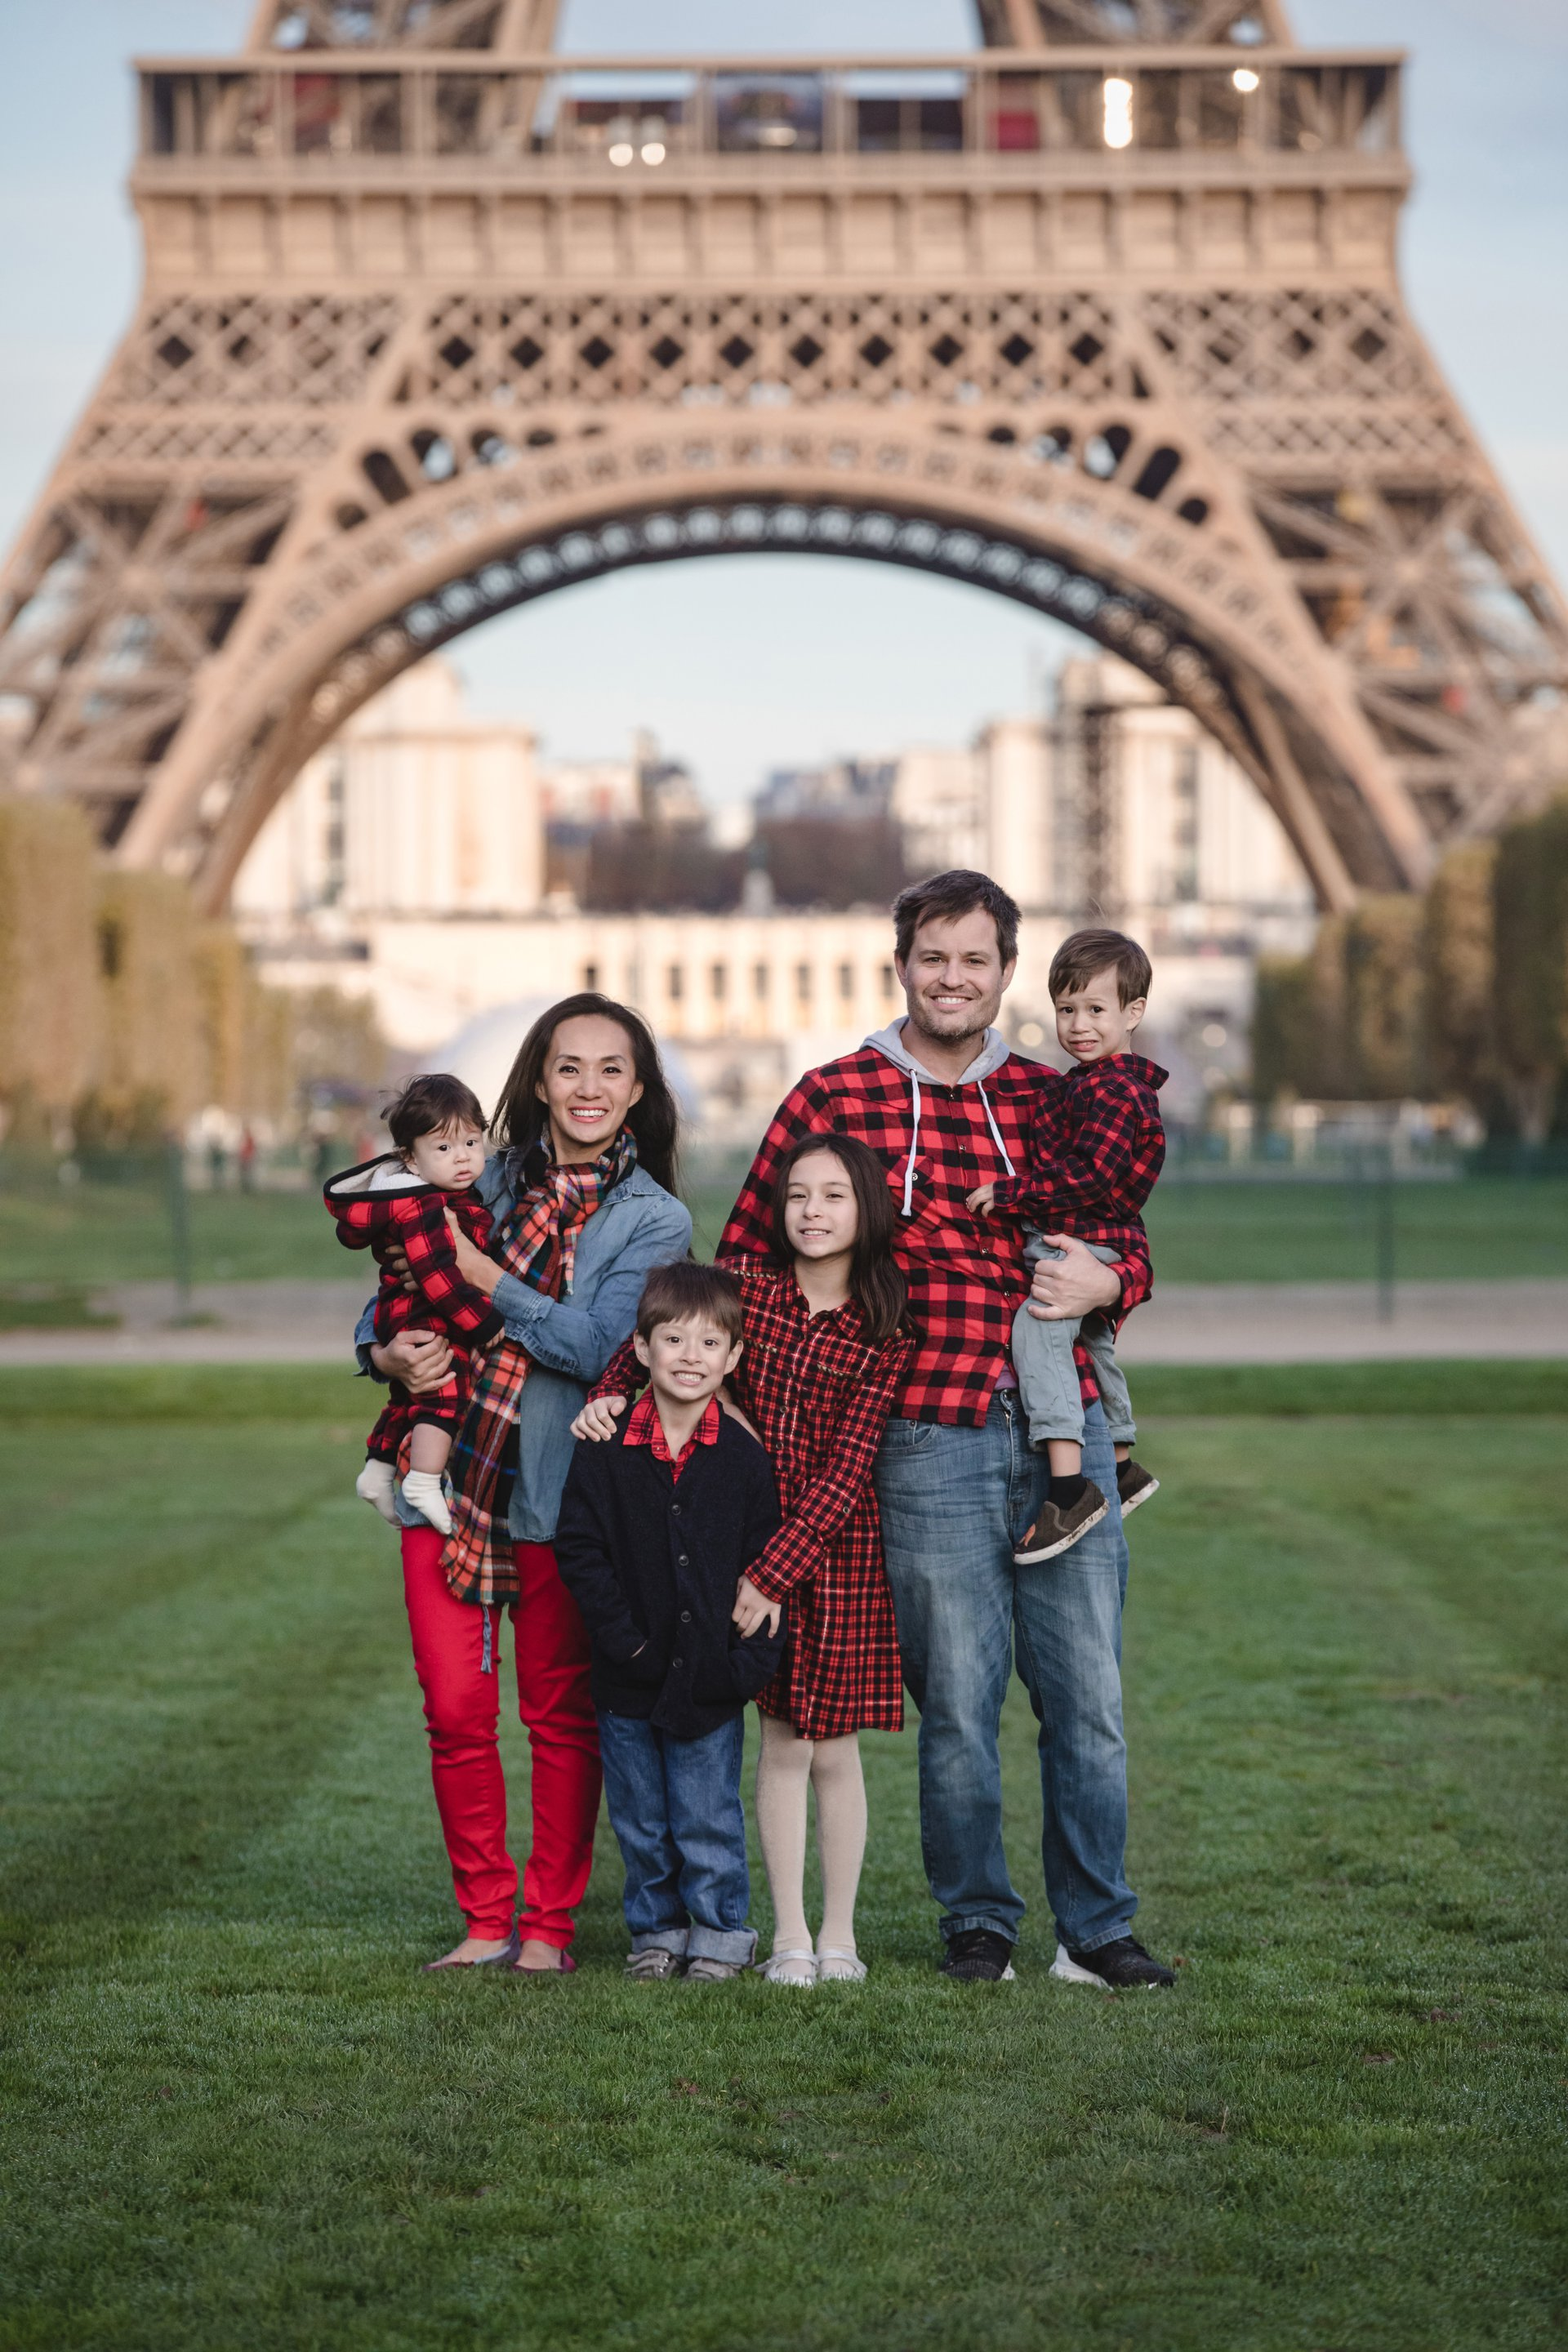 Flytographer Travel Story - Family Paris Adventure